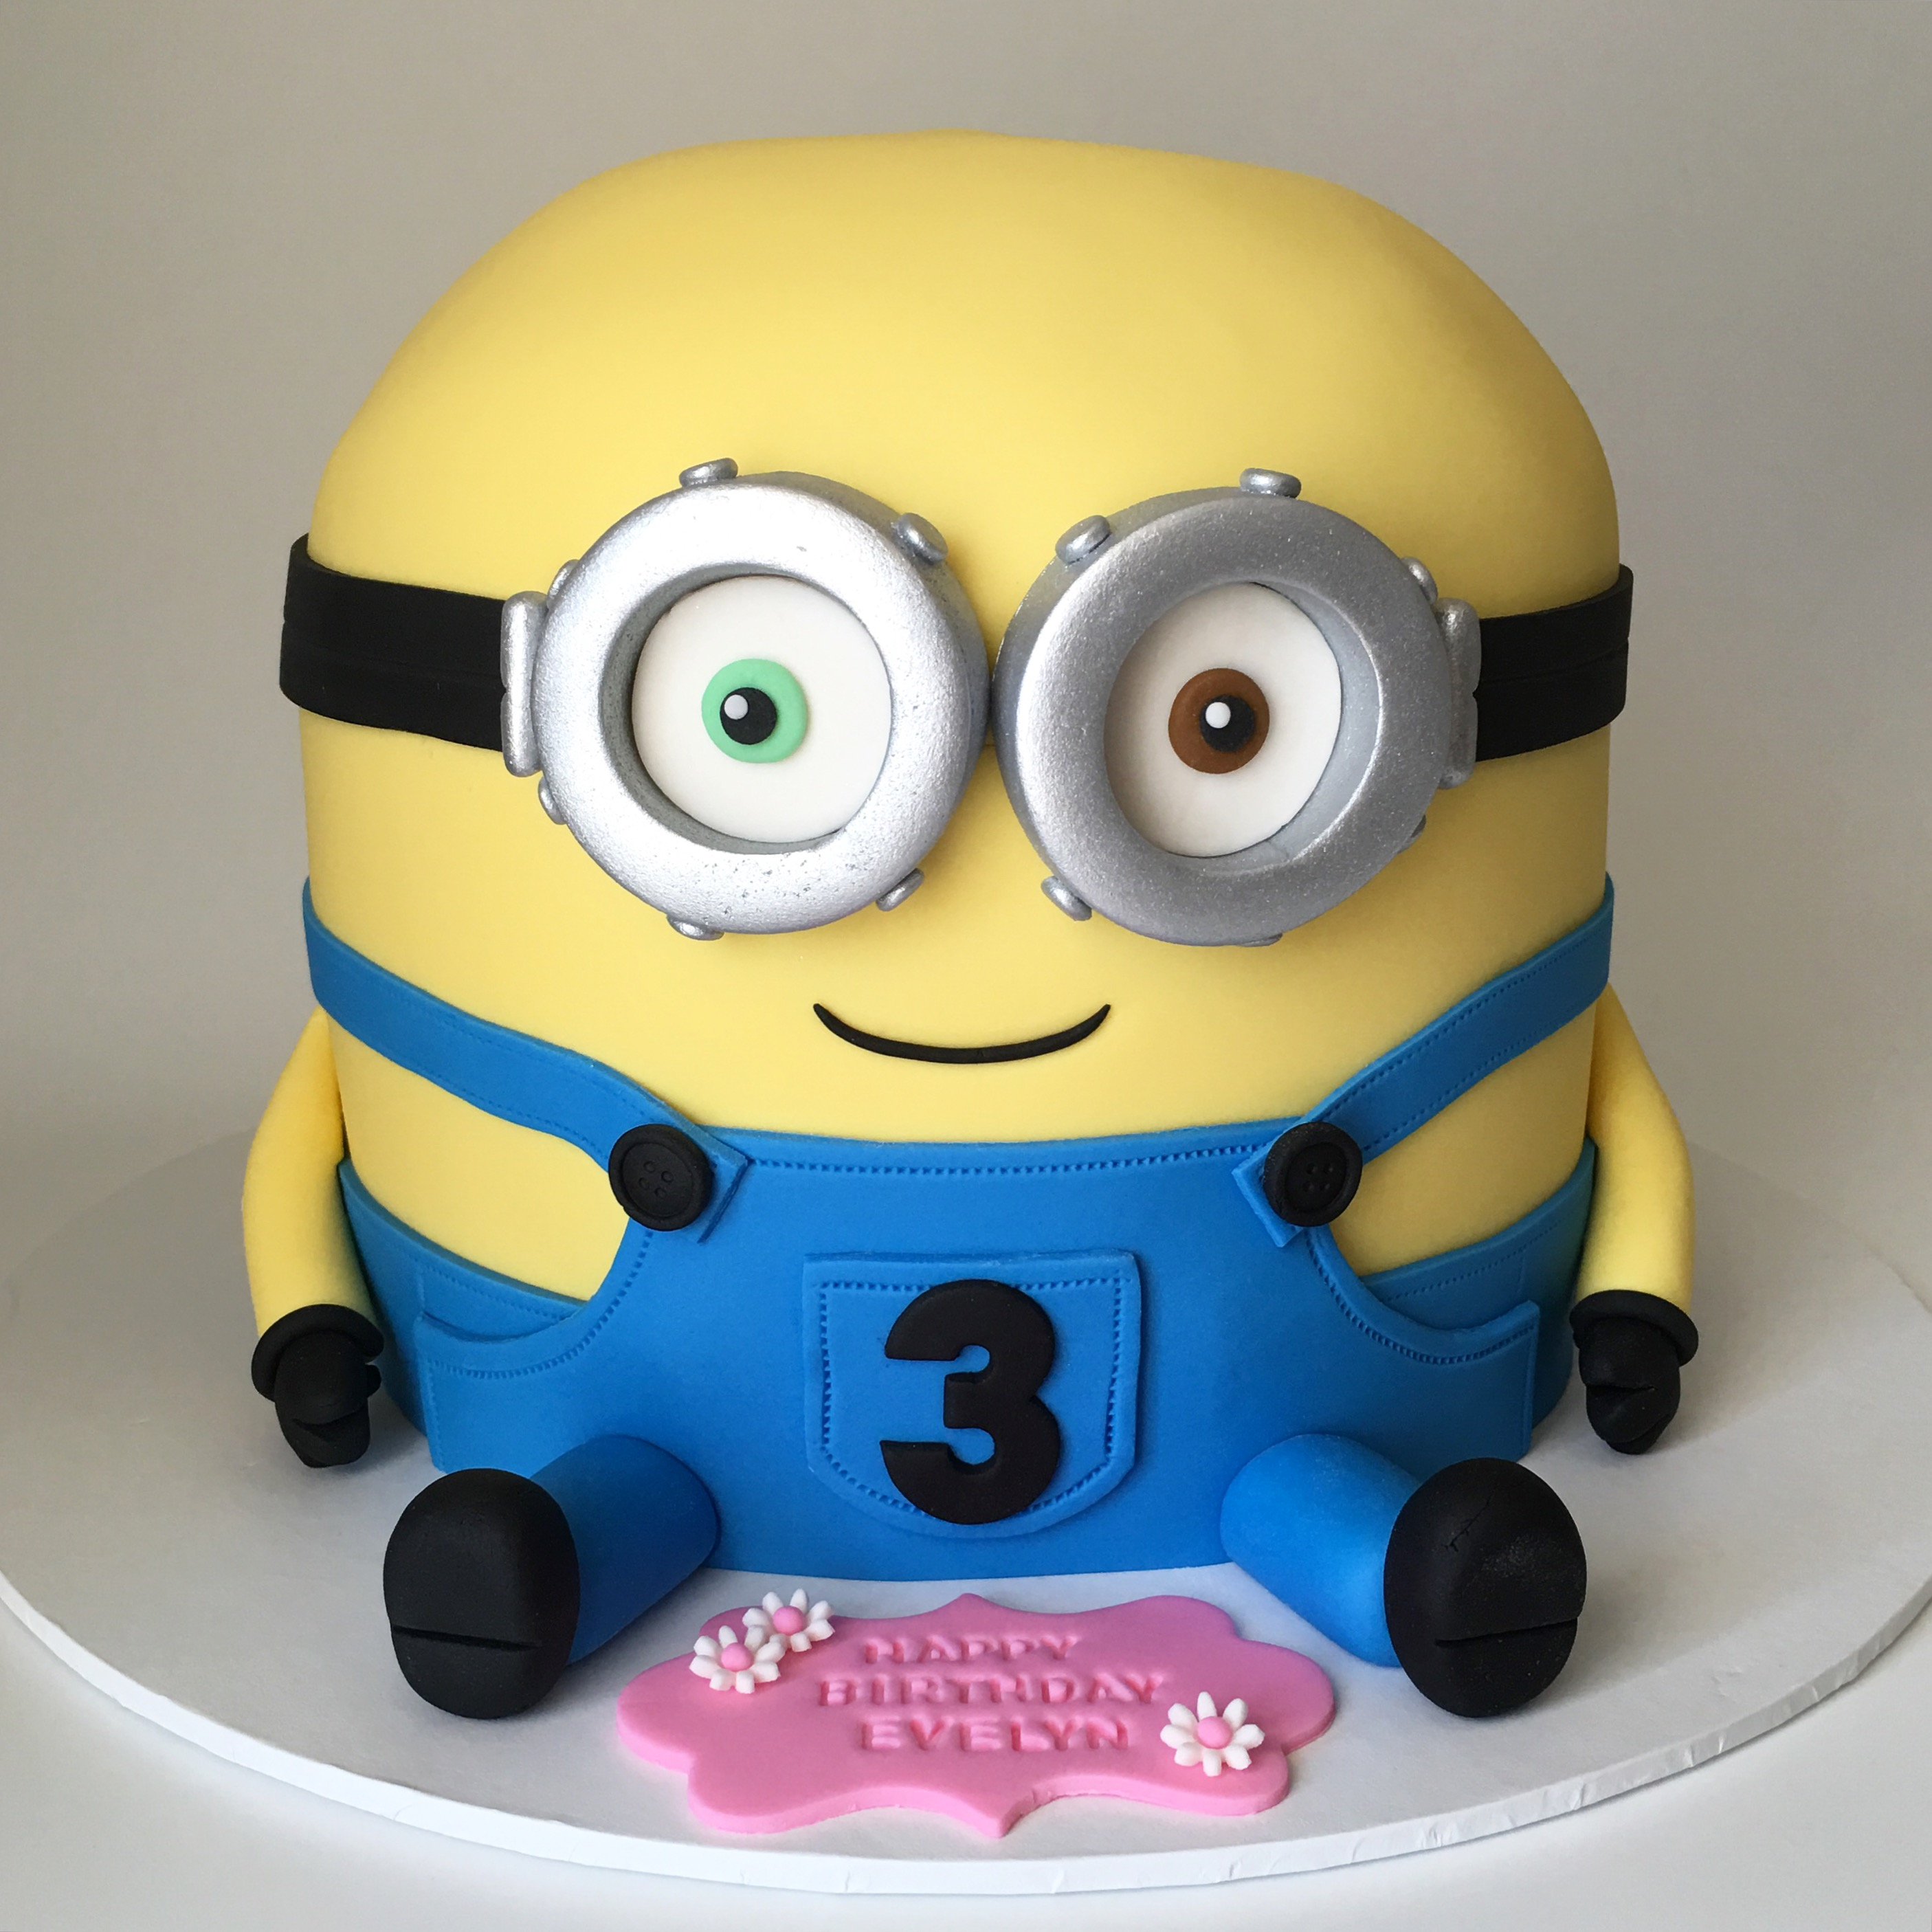 Minion sculpted birthday cake